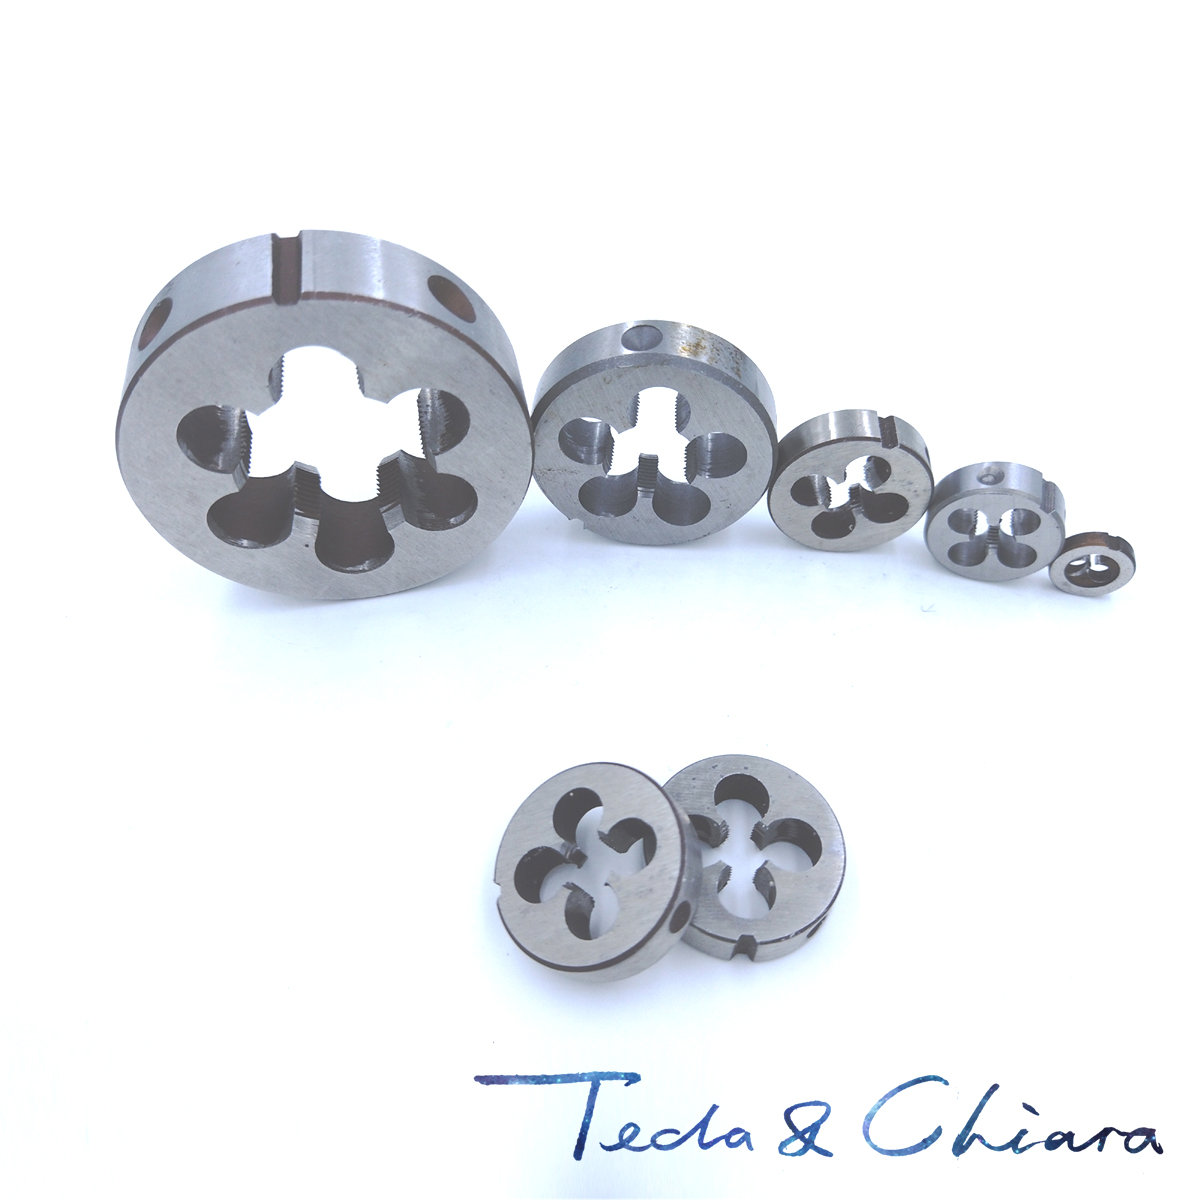 M8 M9 M10 X 0.5mm 0.75mm 1mm 1.25mm 1.5mm Metric Left Hand Die Pitch Threading Tools For Mold Machining * 0.5 0.75 1 1.25 1.5